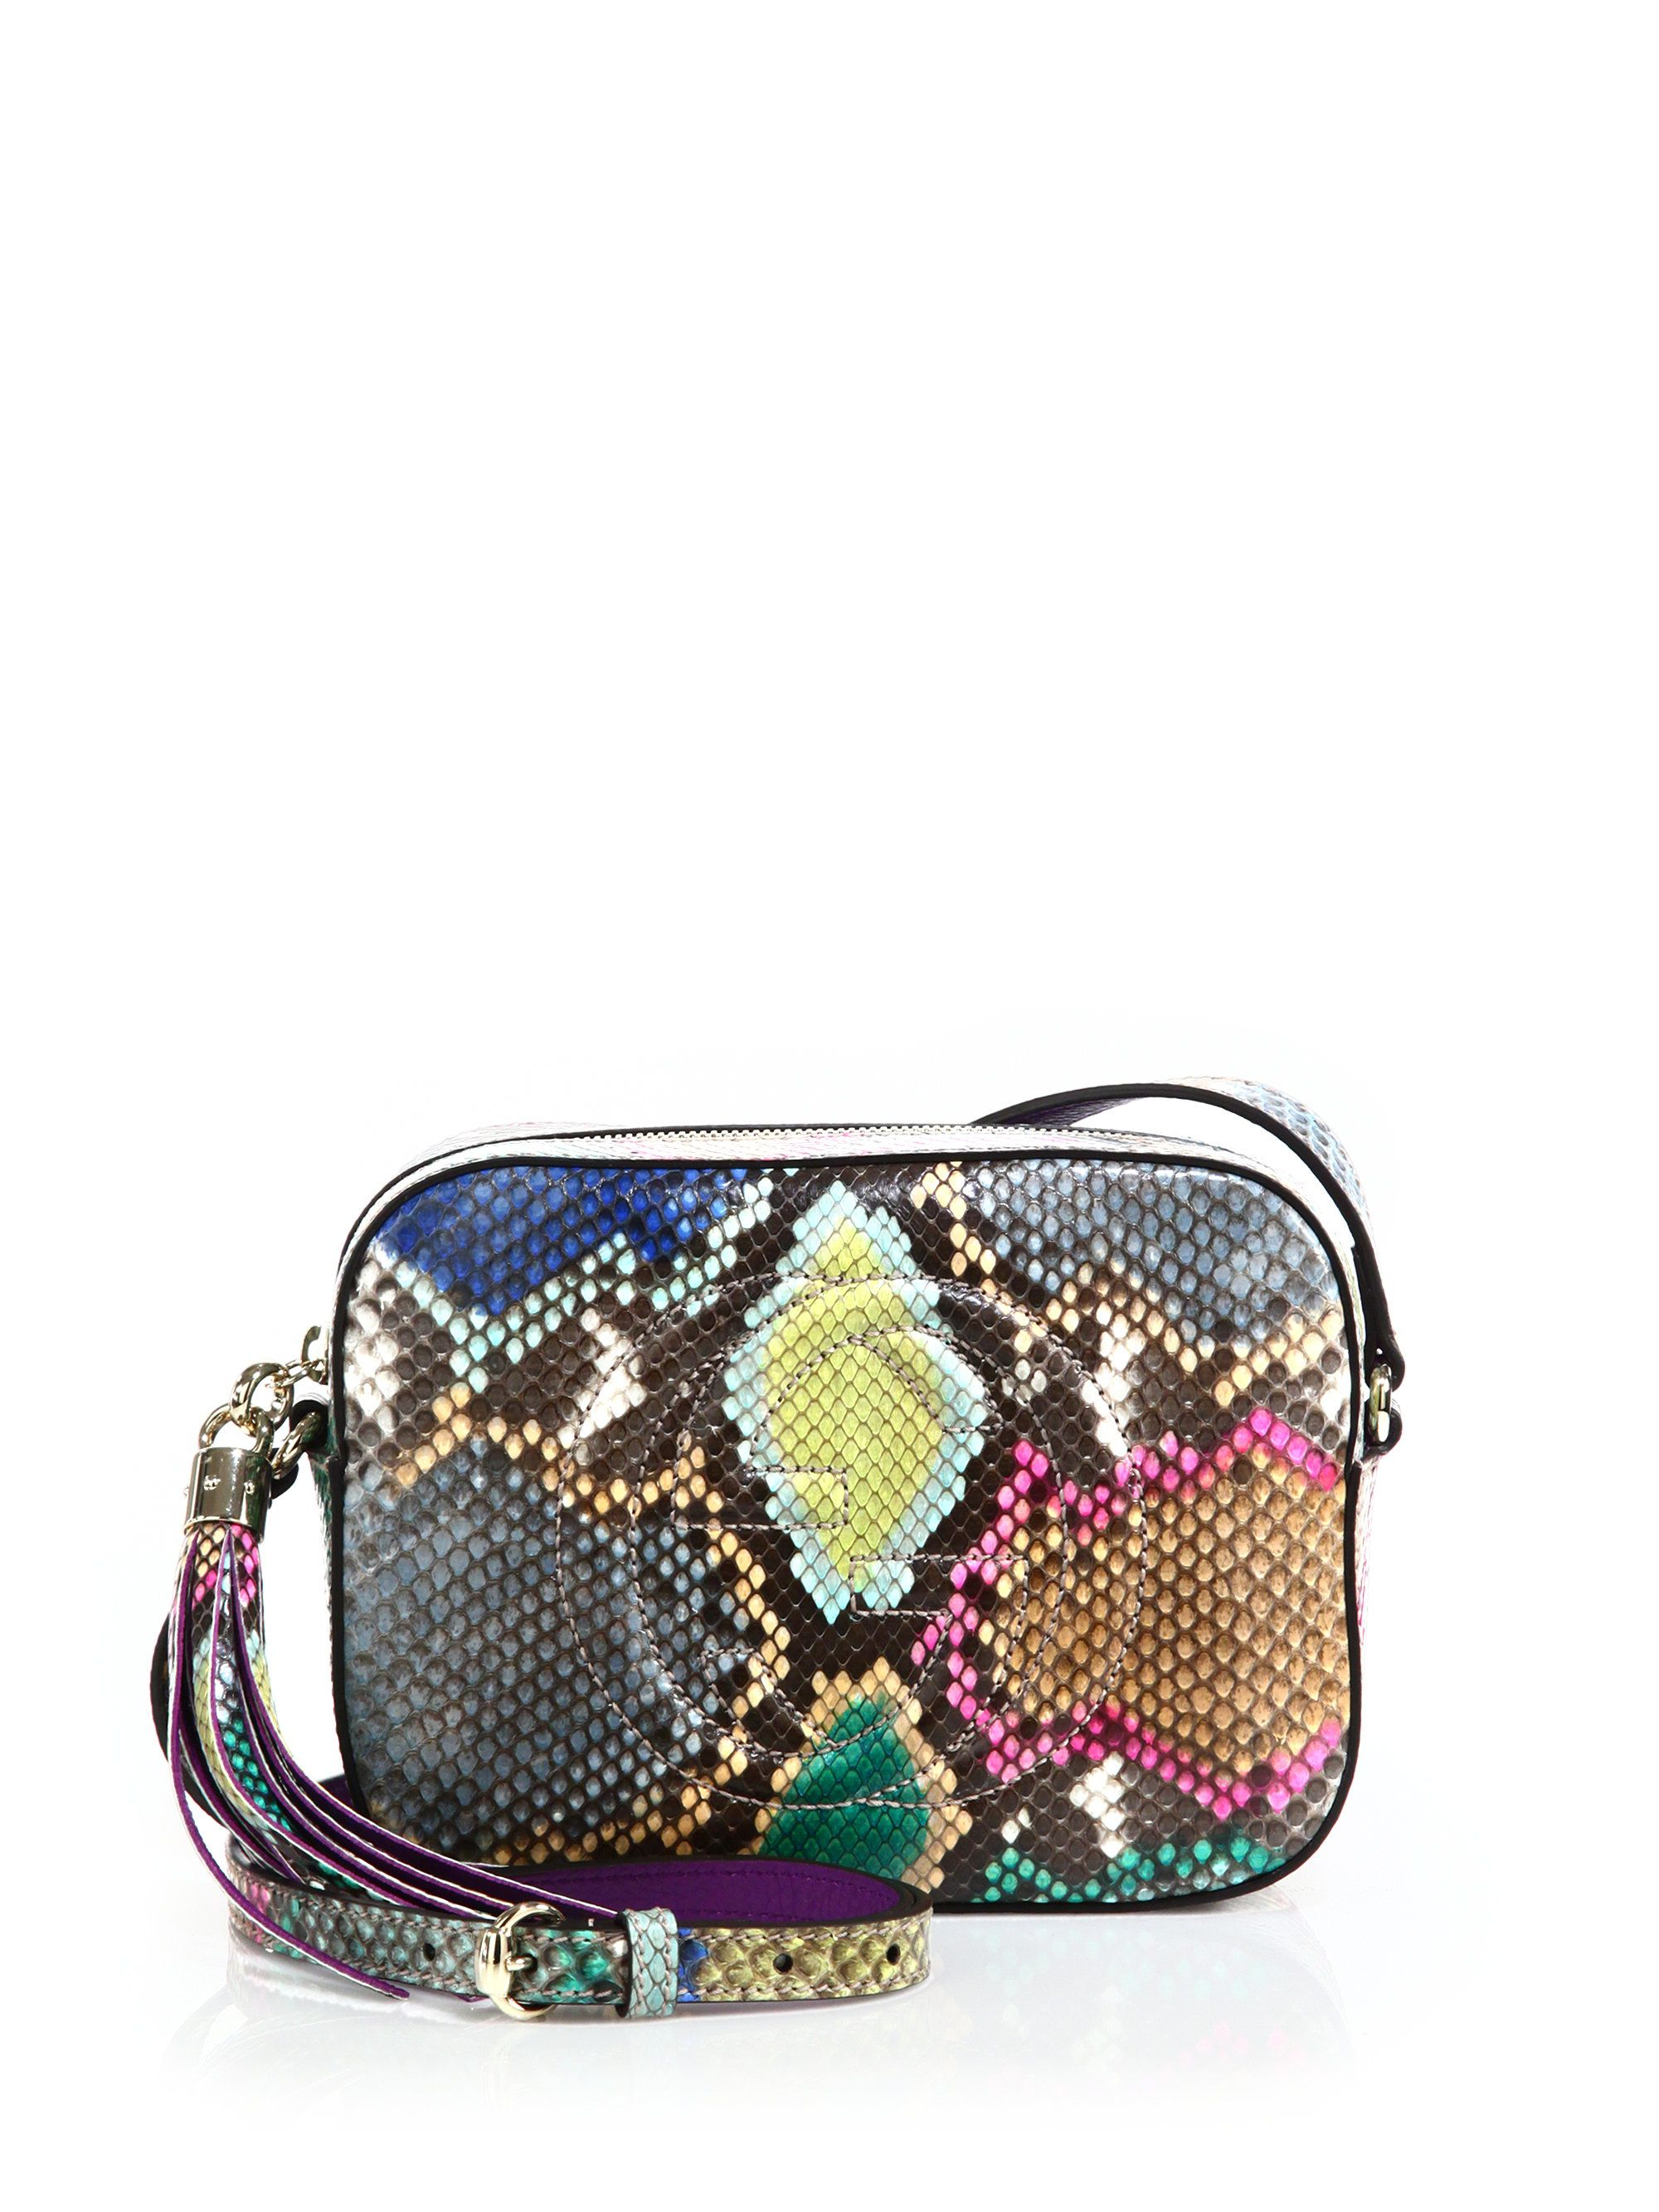 d9b34bbabbd9 Gucci | Multicolor Soho Python Disco Bag | Lyst Gucci Handbags, Gucci Bags,  Purse